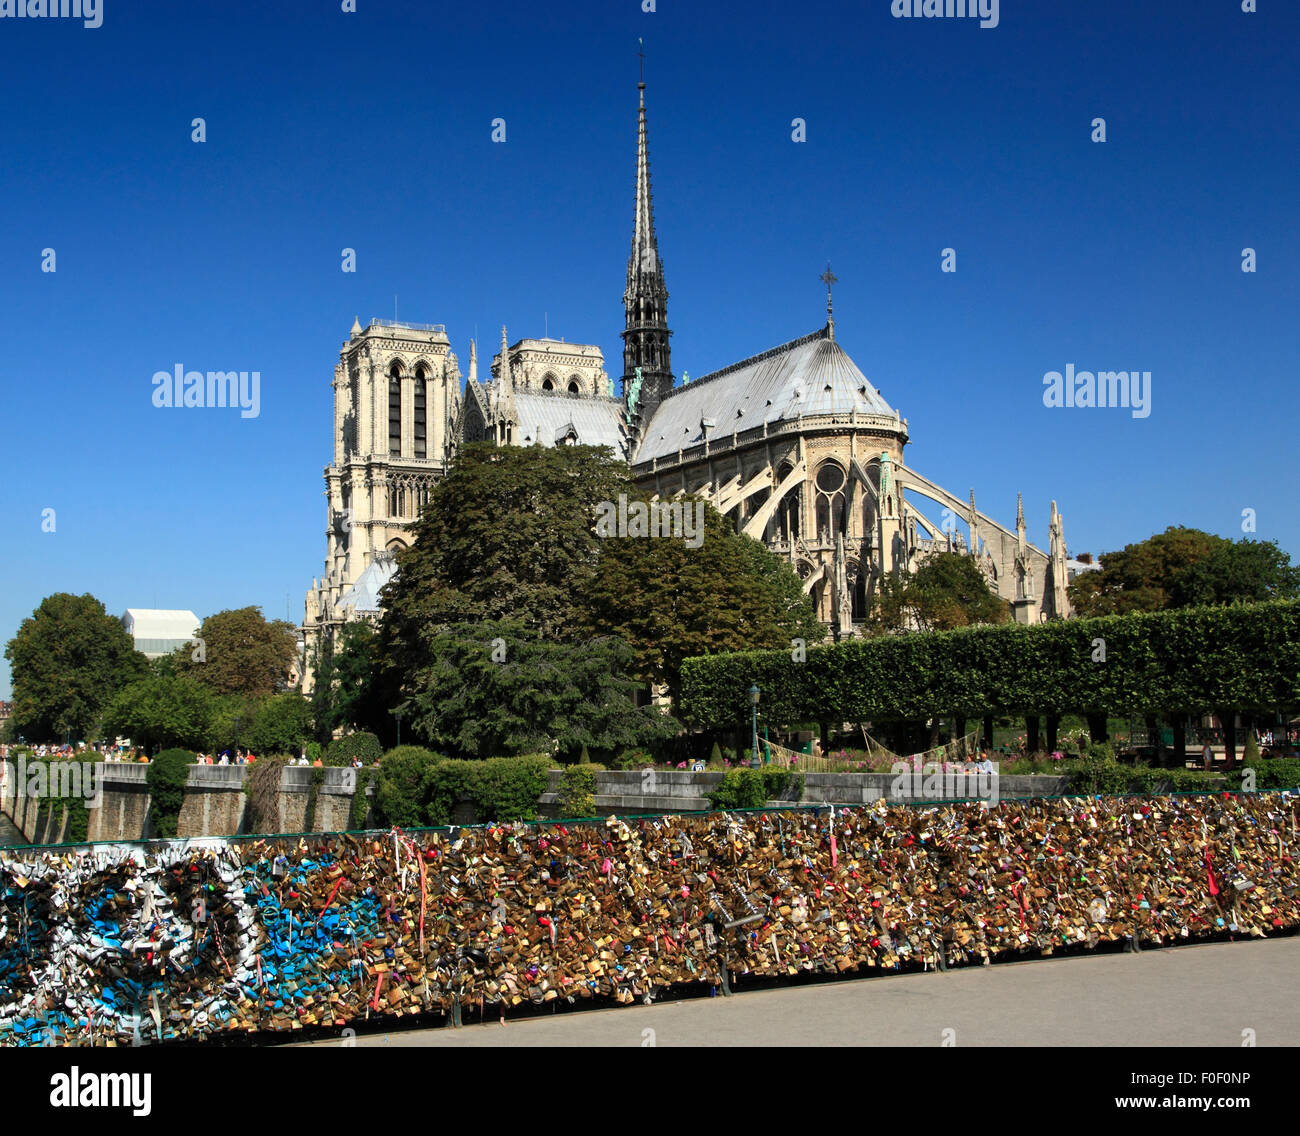 Notre Dame de Paris with a padlock lined bridge in the foreground. Paris, France, Europe - Stock Image